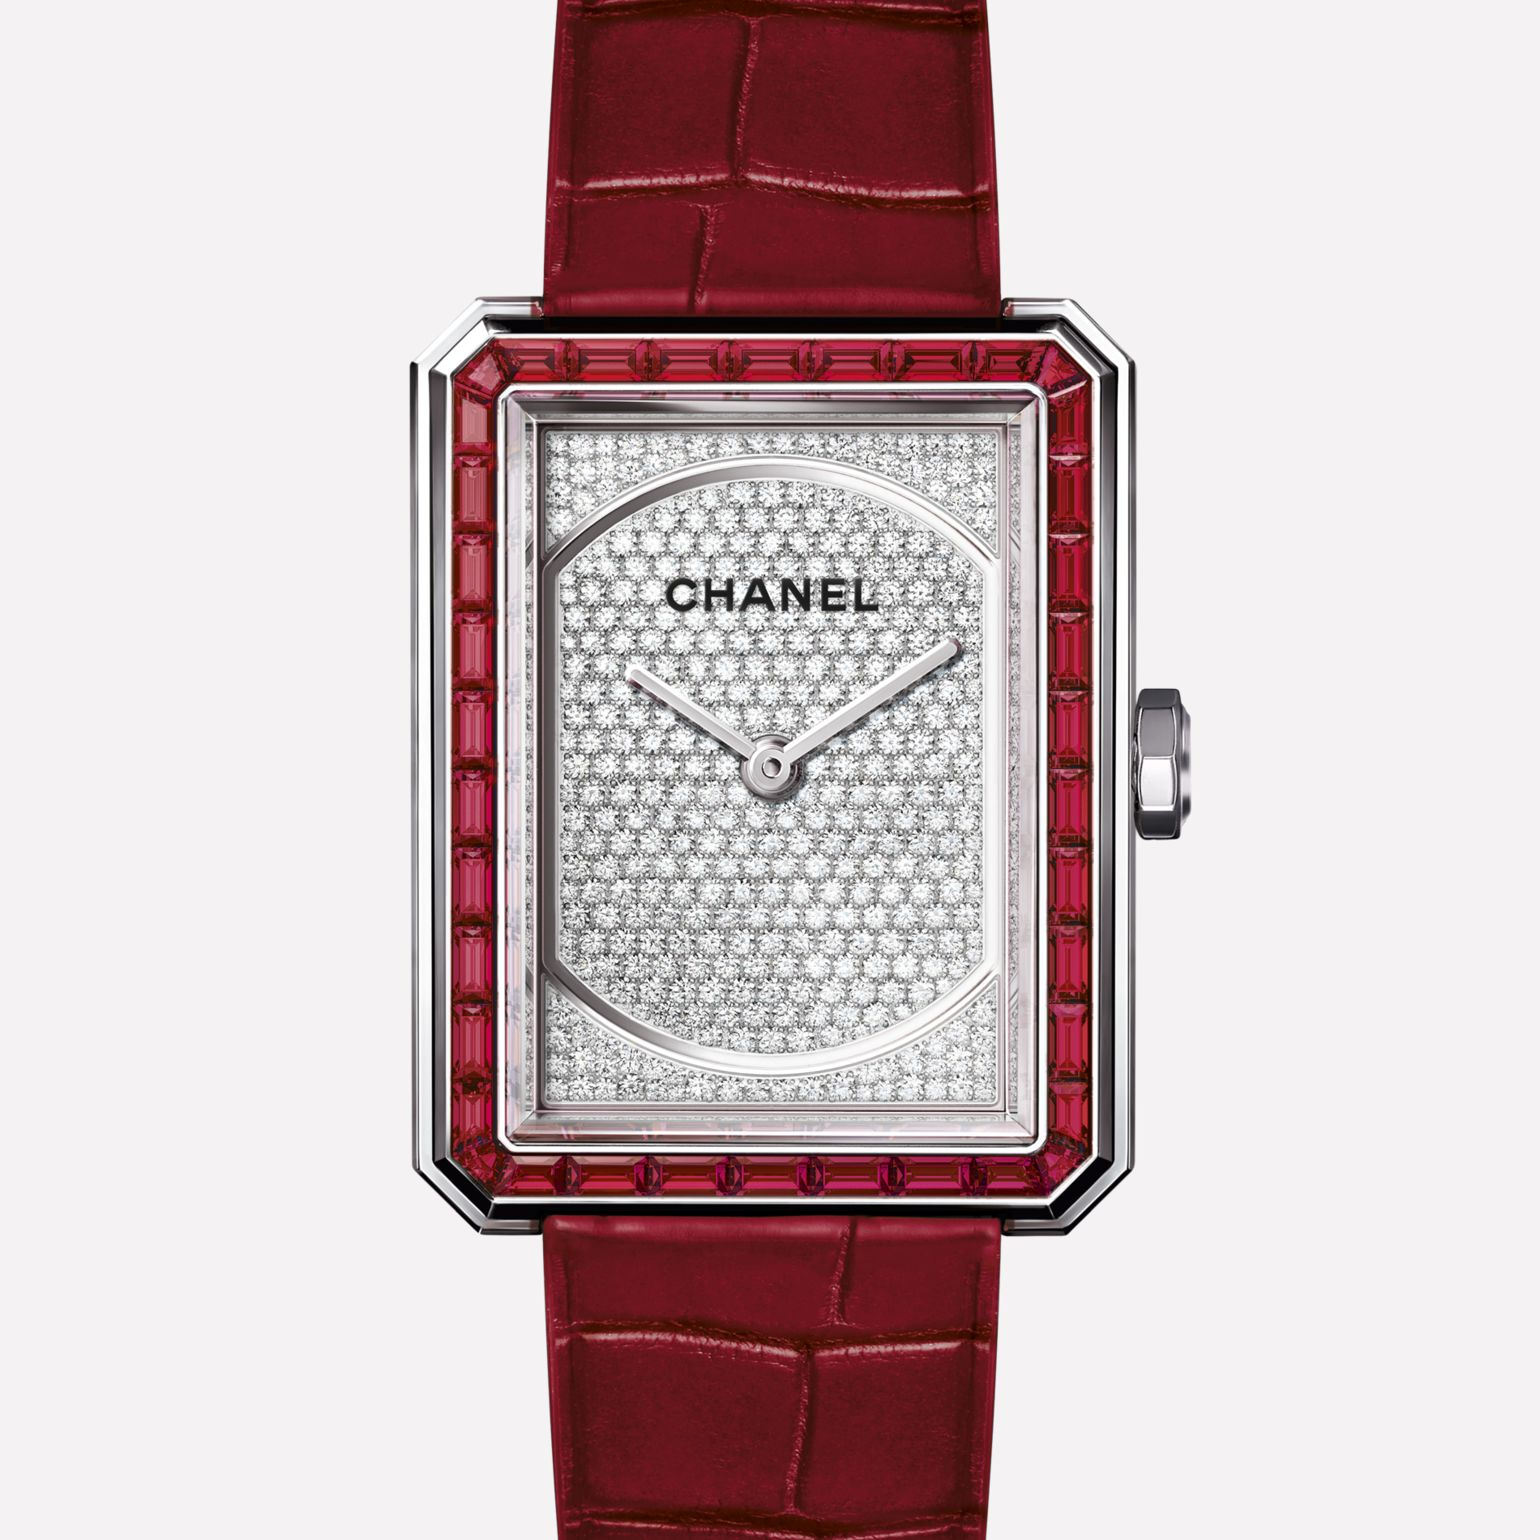 PREMIÈRE∙BOY DE CHANEL RUBIS Medium version, white gold set with rubies and diamonds and alligator strap